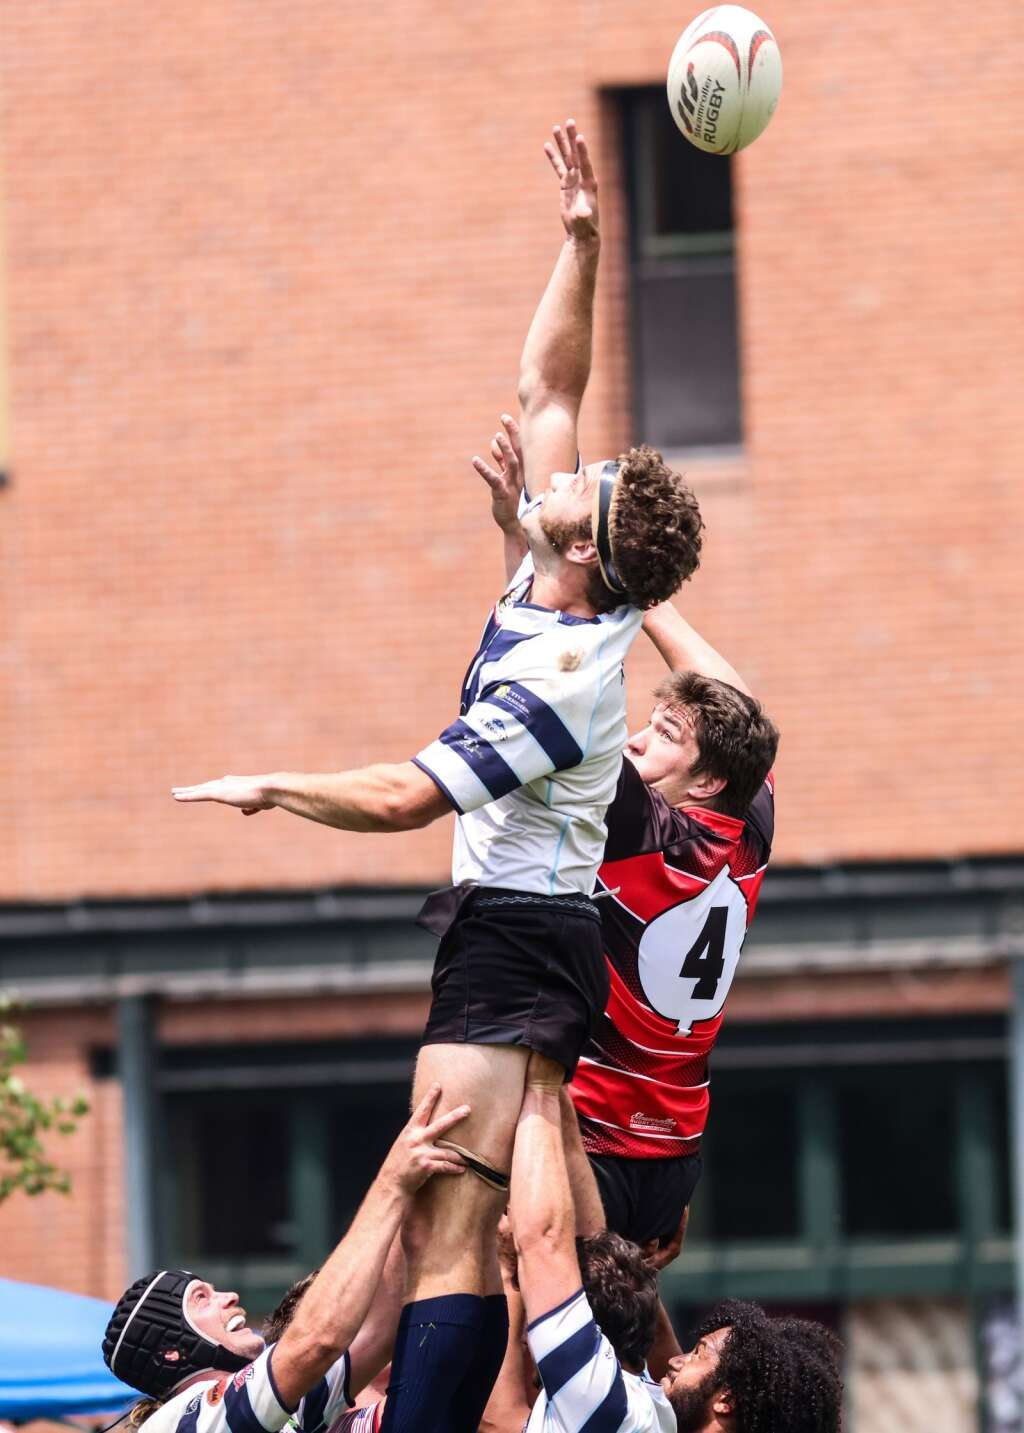 The Gentlemen of Aspen Rugby Club plays Vail on Saturday, July 24, 2021, at Wagner Park in downtown Aspen. Photo by Austin Colbert/The Aspen Times.